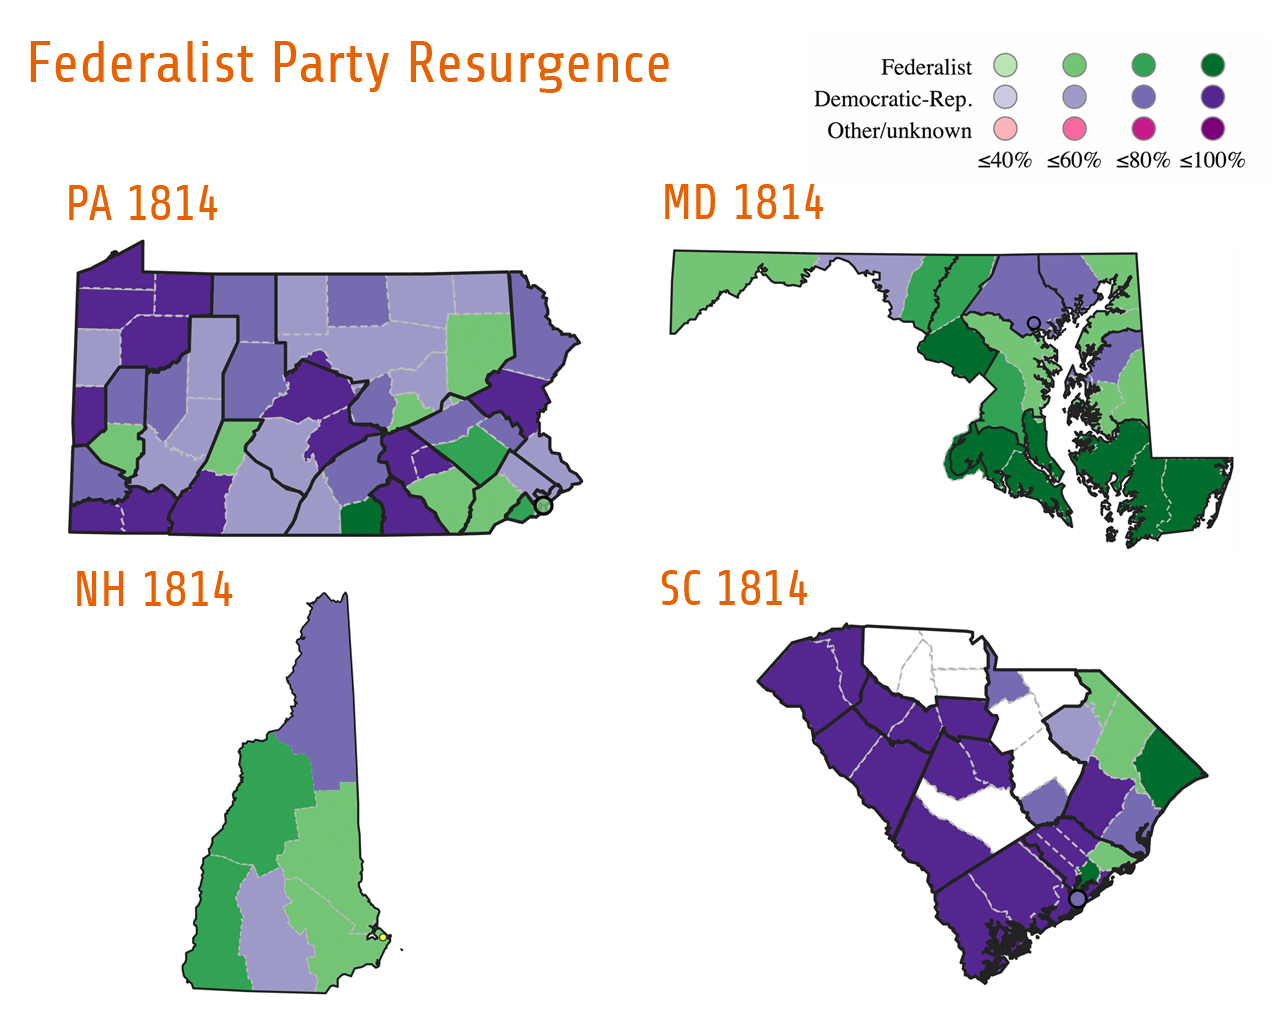 After 1800, the Federalist's influence slowly declined. While they were able to contest local elections, they were no longer able to win the presidency or control Congress. However, as these map show, the Federalist Party (green) experienced a resurgence across the country during the War of 1812. During elections for the Fourteenth Congress, Federalist-leaning states in the north such as New Hampshire elected all Federalist representatives. Federalists also won seats in the Mid-Atlantic in states such as Maryland (5 out of 9 seats) and Pennsylvania (7 out of 23 seats). Even voters in South Carolina elected one Federalist to Congress.